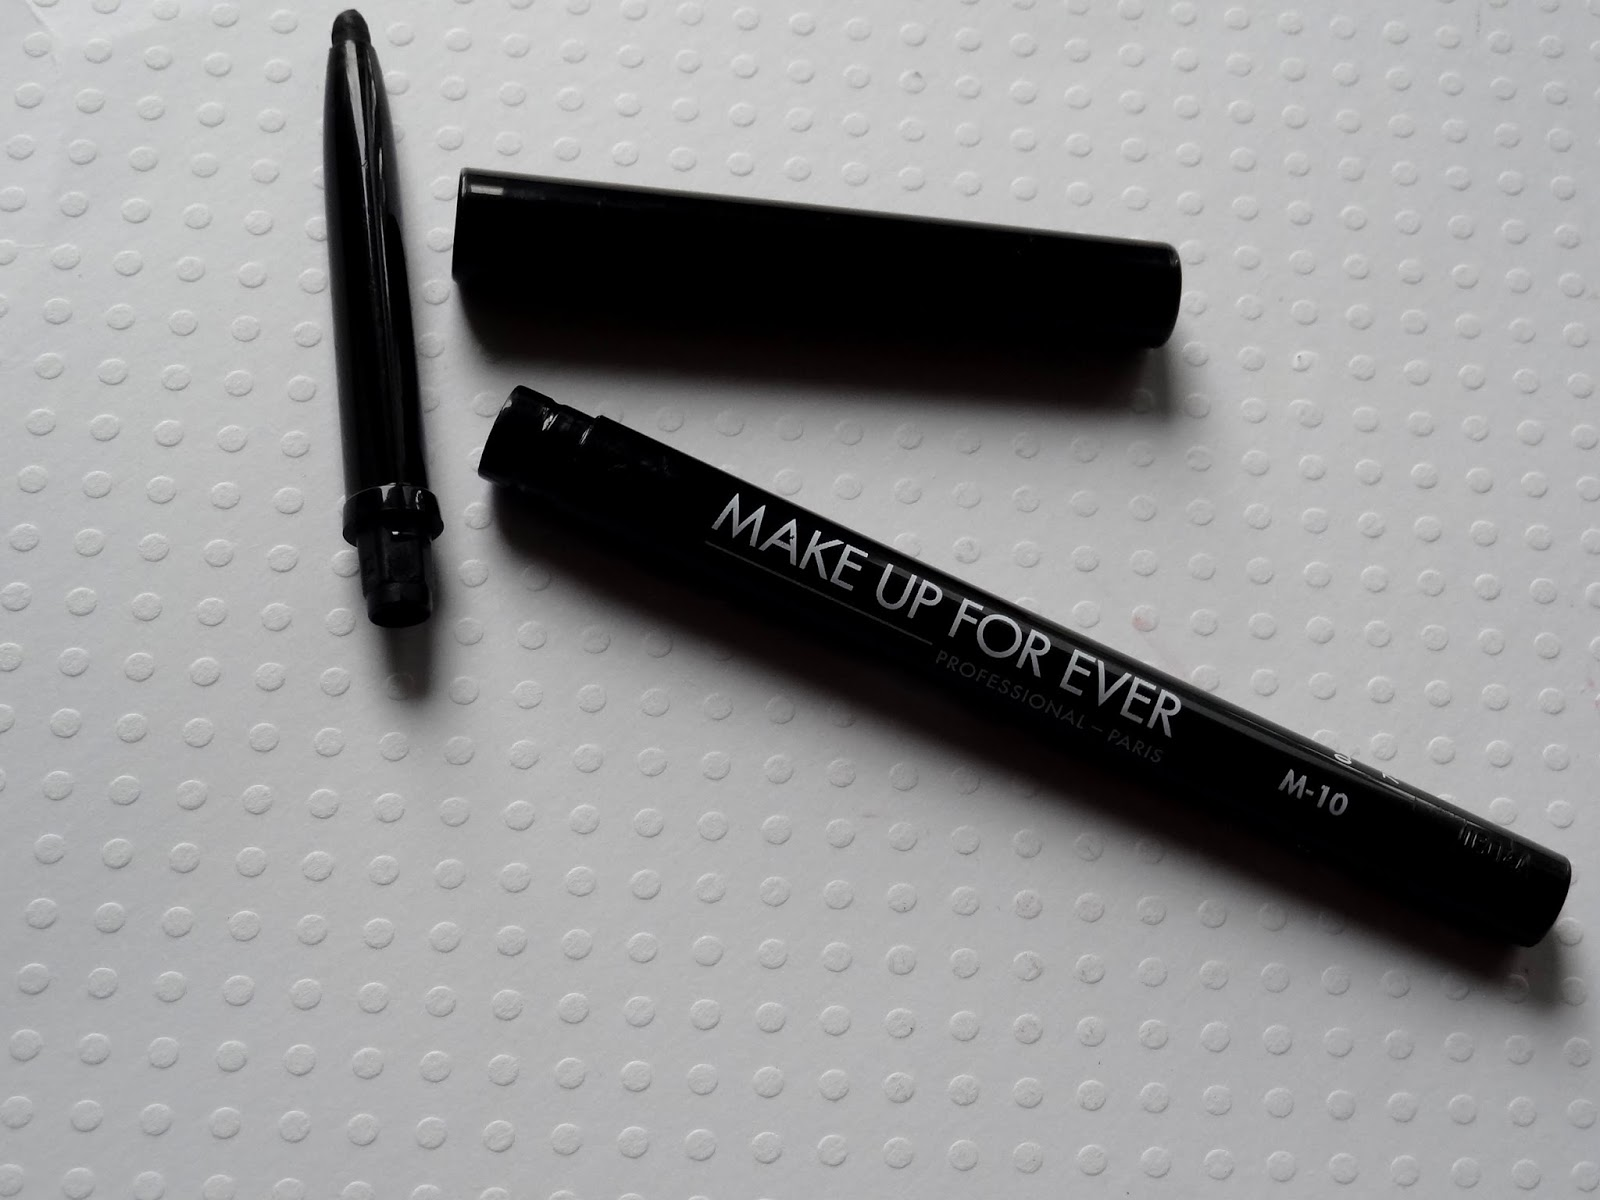 make up for ever eyeliner in m10 Review, Photos & Swatches